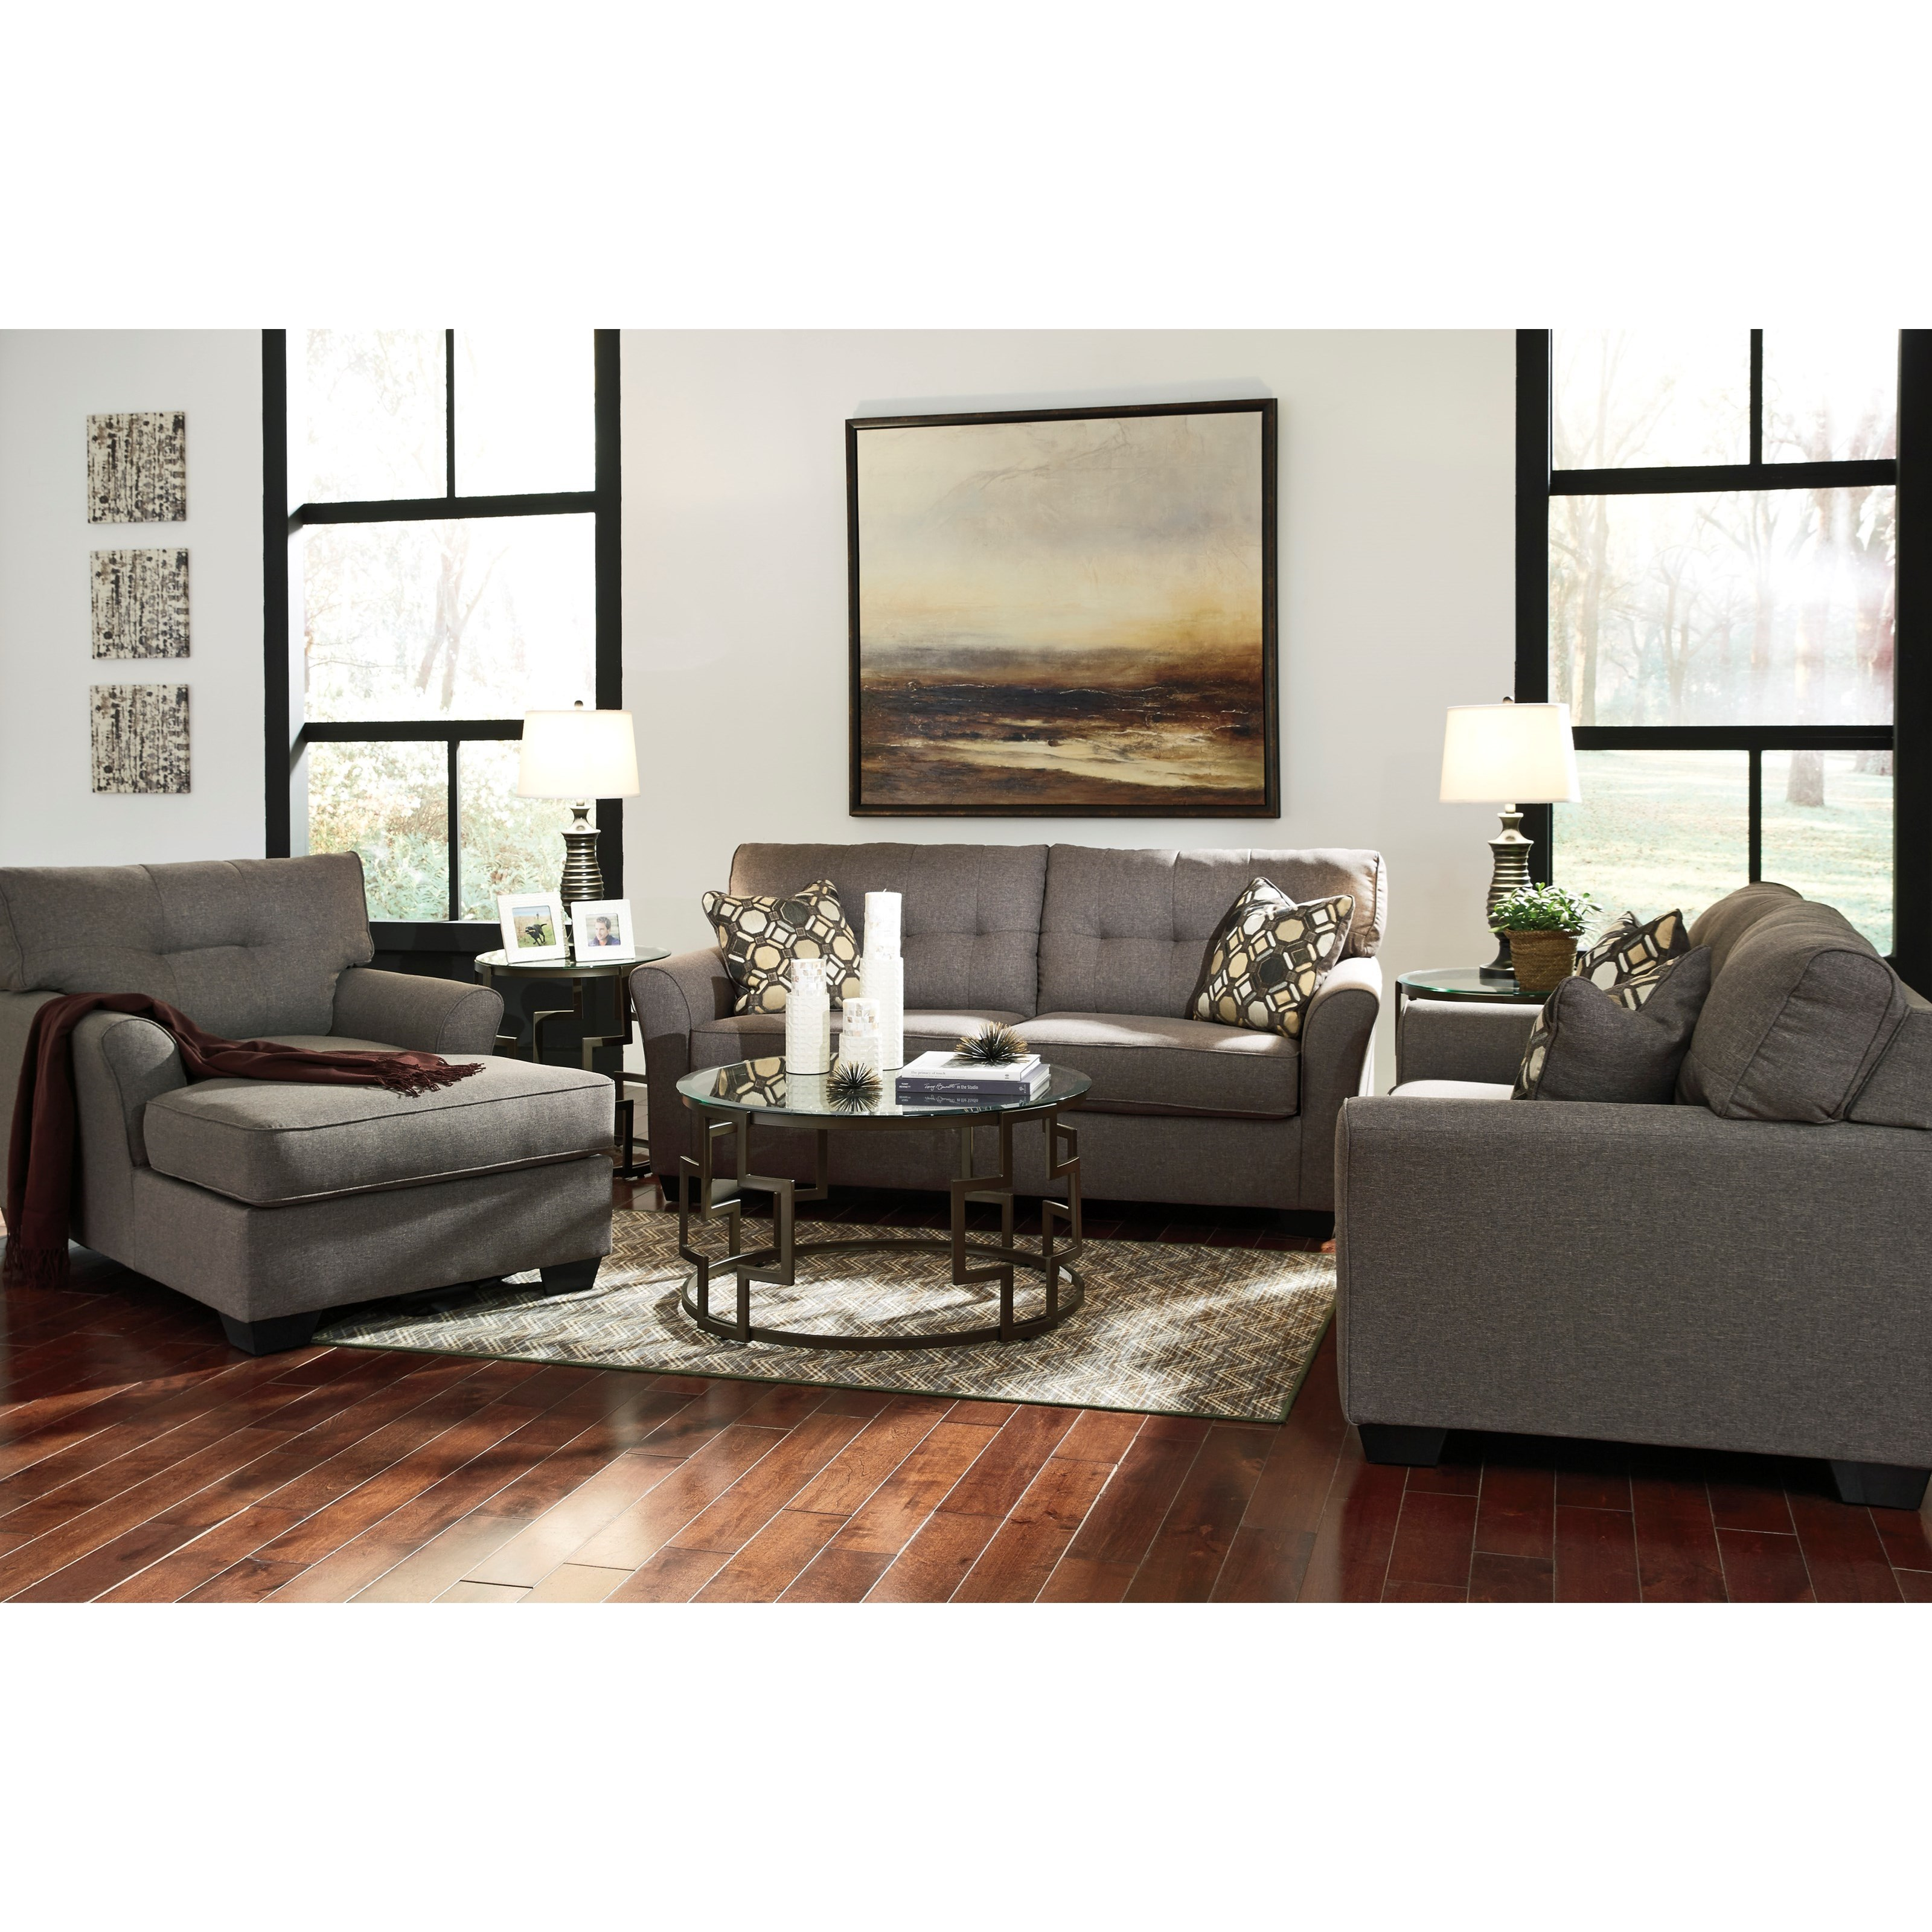 Furniture By Ashley: Signature Design By Ashley Tibbee 9910115 Contemporary